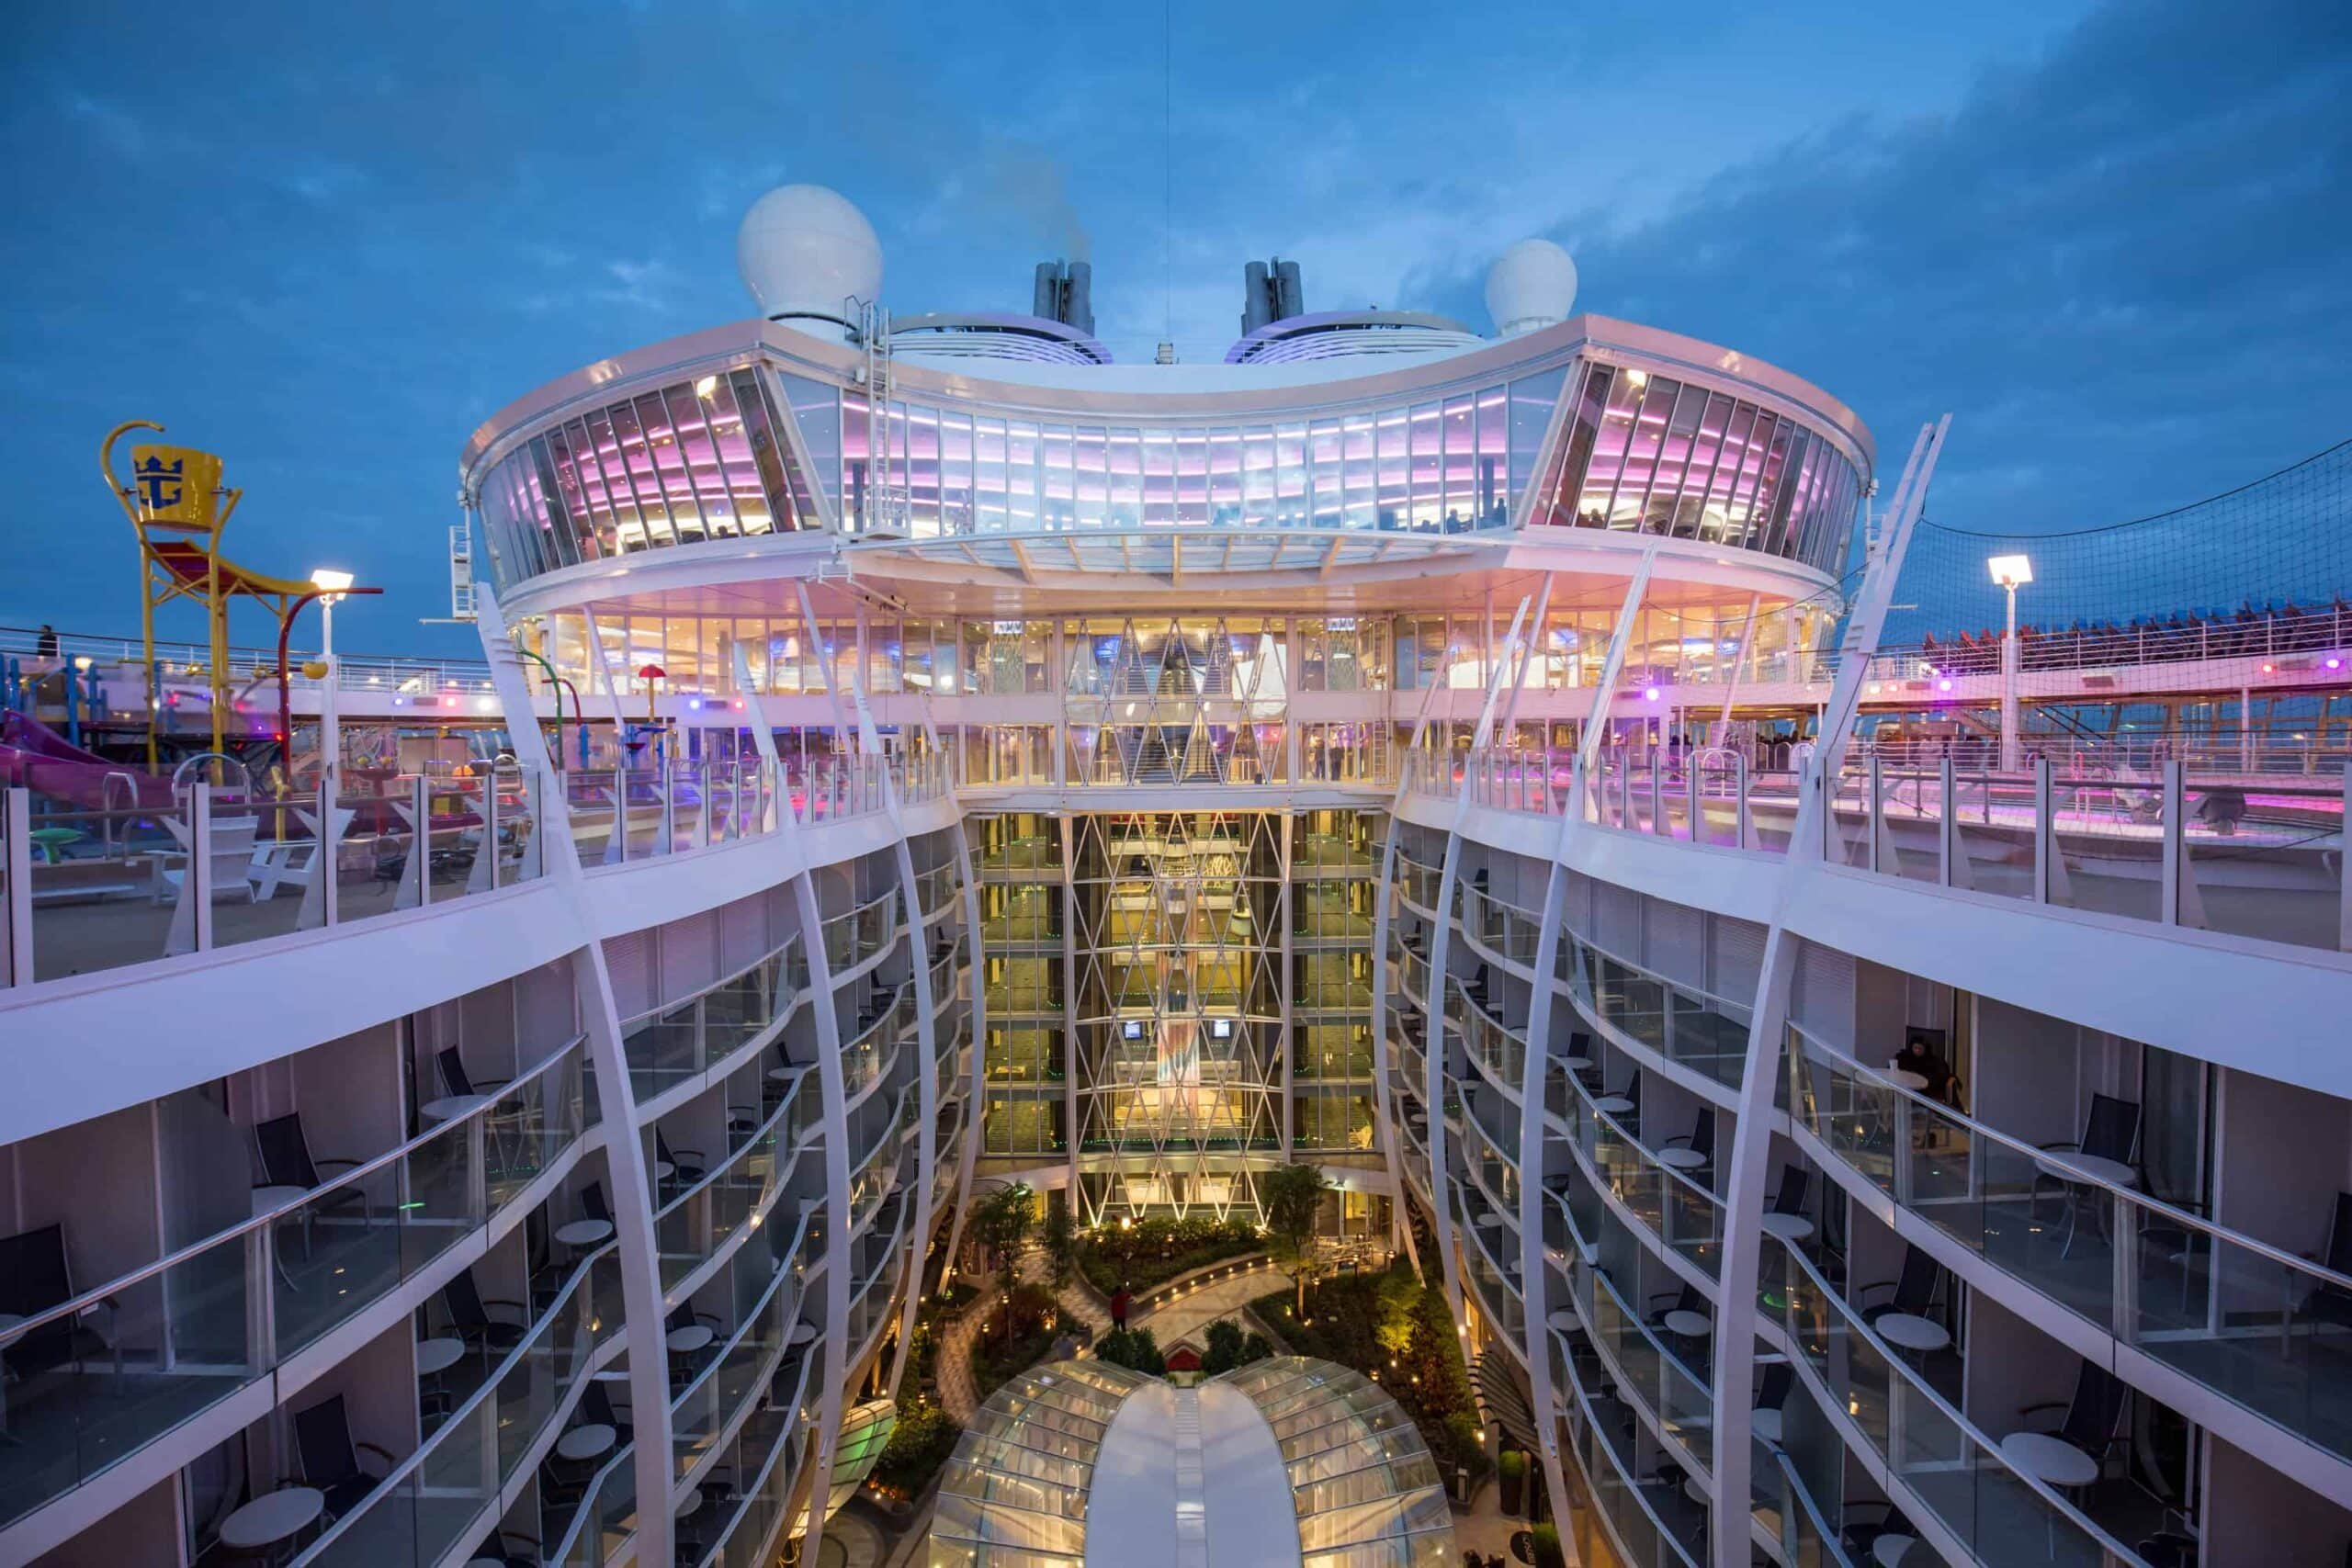 A Look Inside Photo Gallery Of Harmony Of The Seas - Southampton cruise ship parking